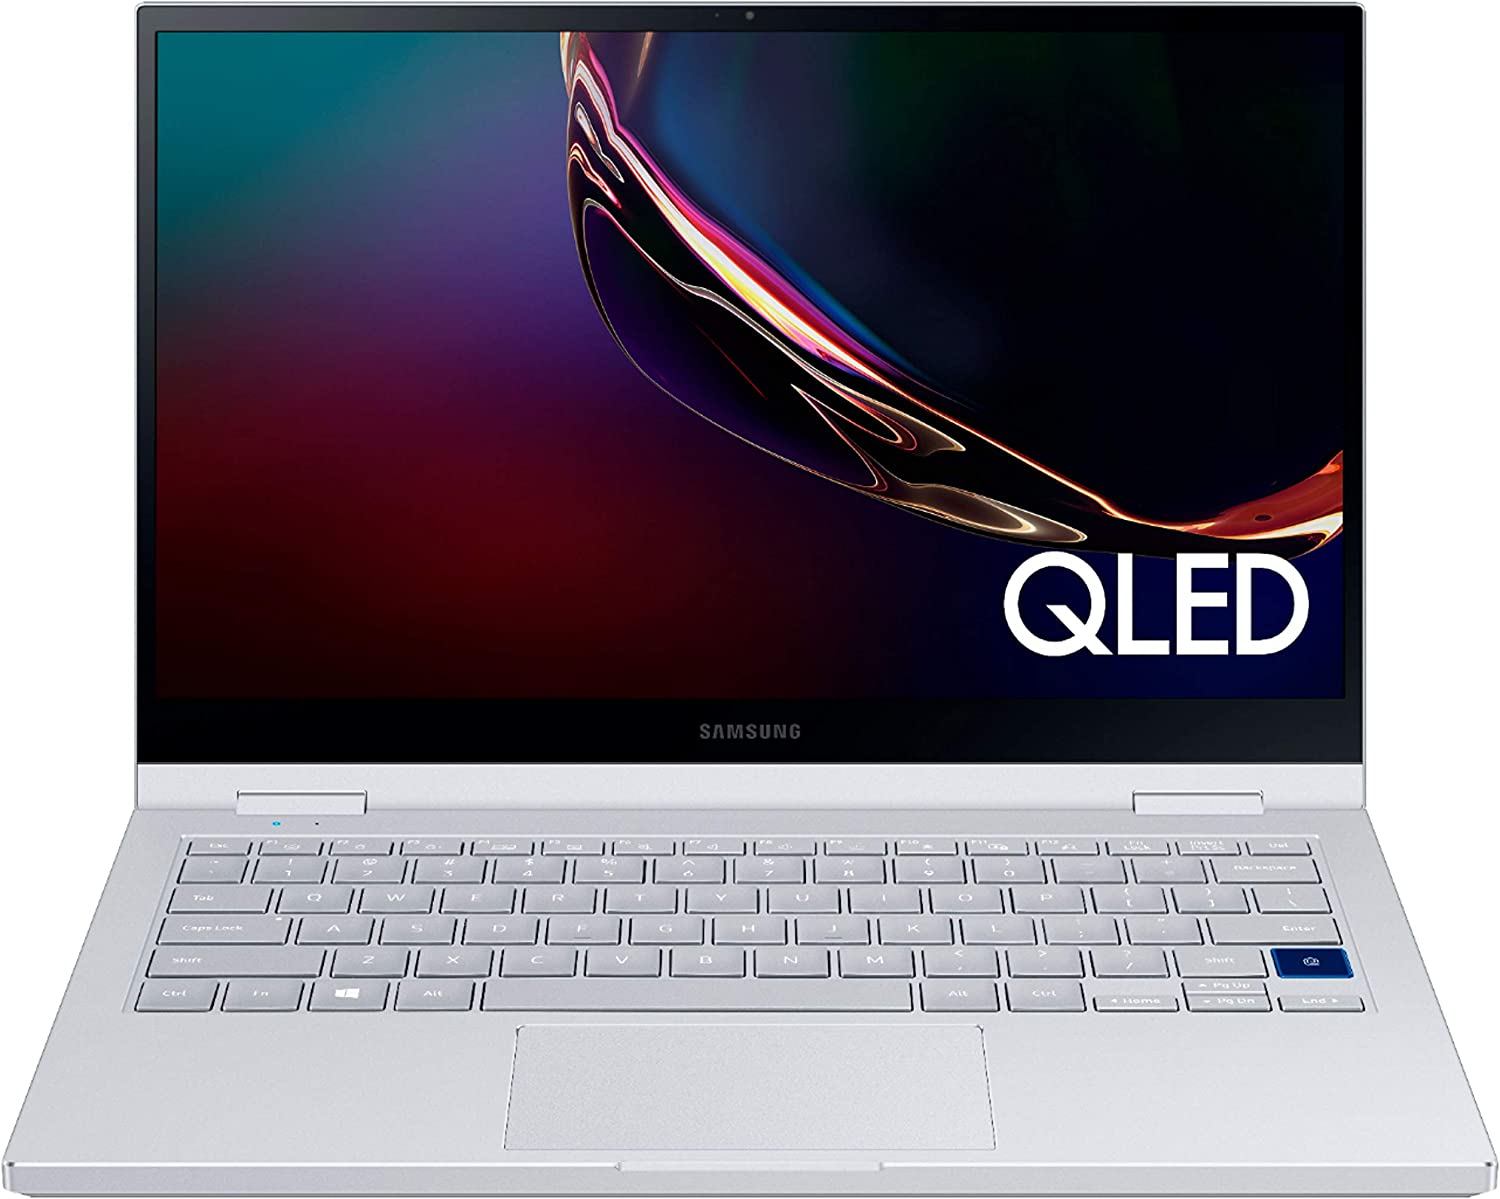 "Samsung Galaxy Book Flex Alpha 2-in-1 13.3"" QLED Touch-Screen Laptop 10th Gen Core i5-10210U 8GB RAM 256GB SSD Backlit KB Type-C Wi-Fi 6 FP Reader Webcam Battery Life 18.5 hrs Win10"